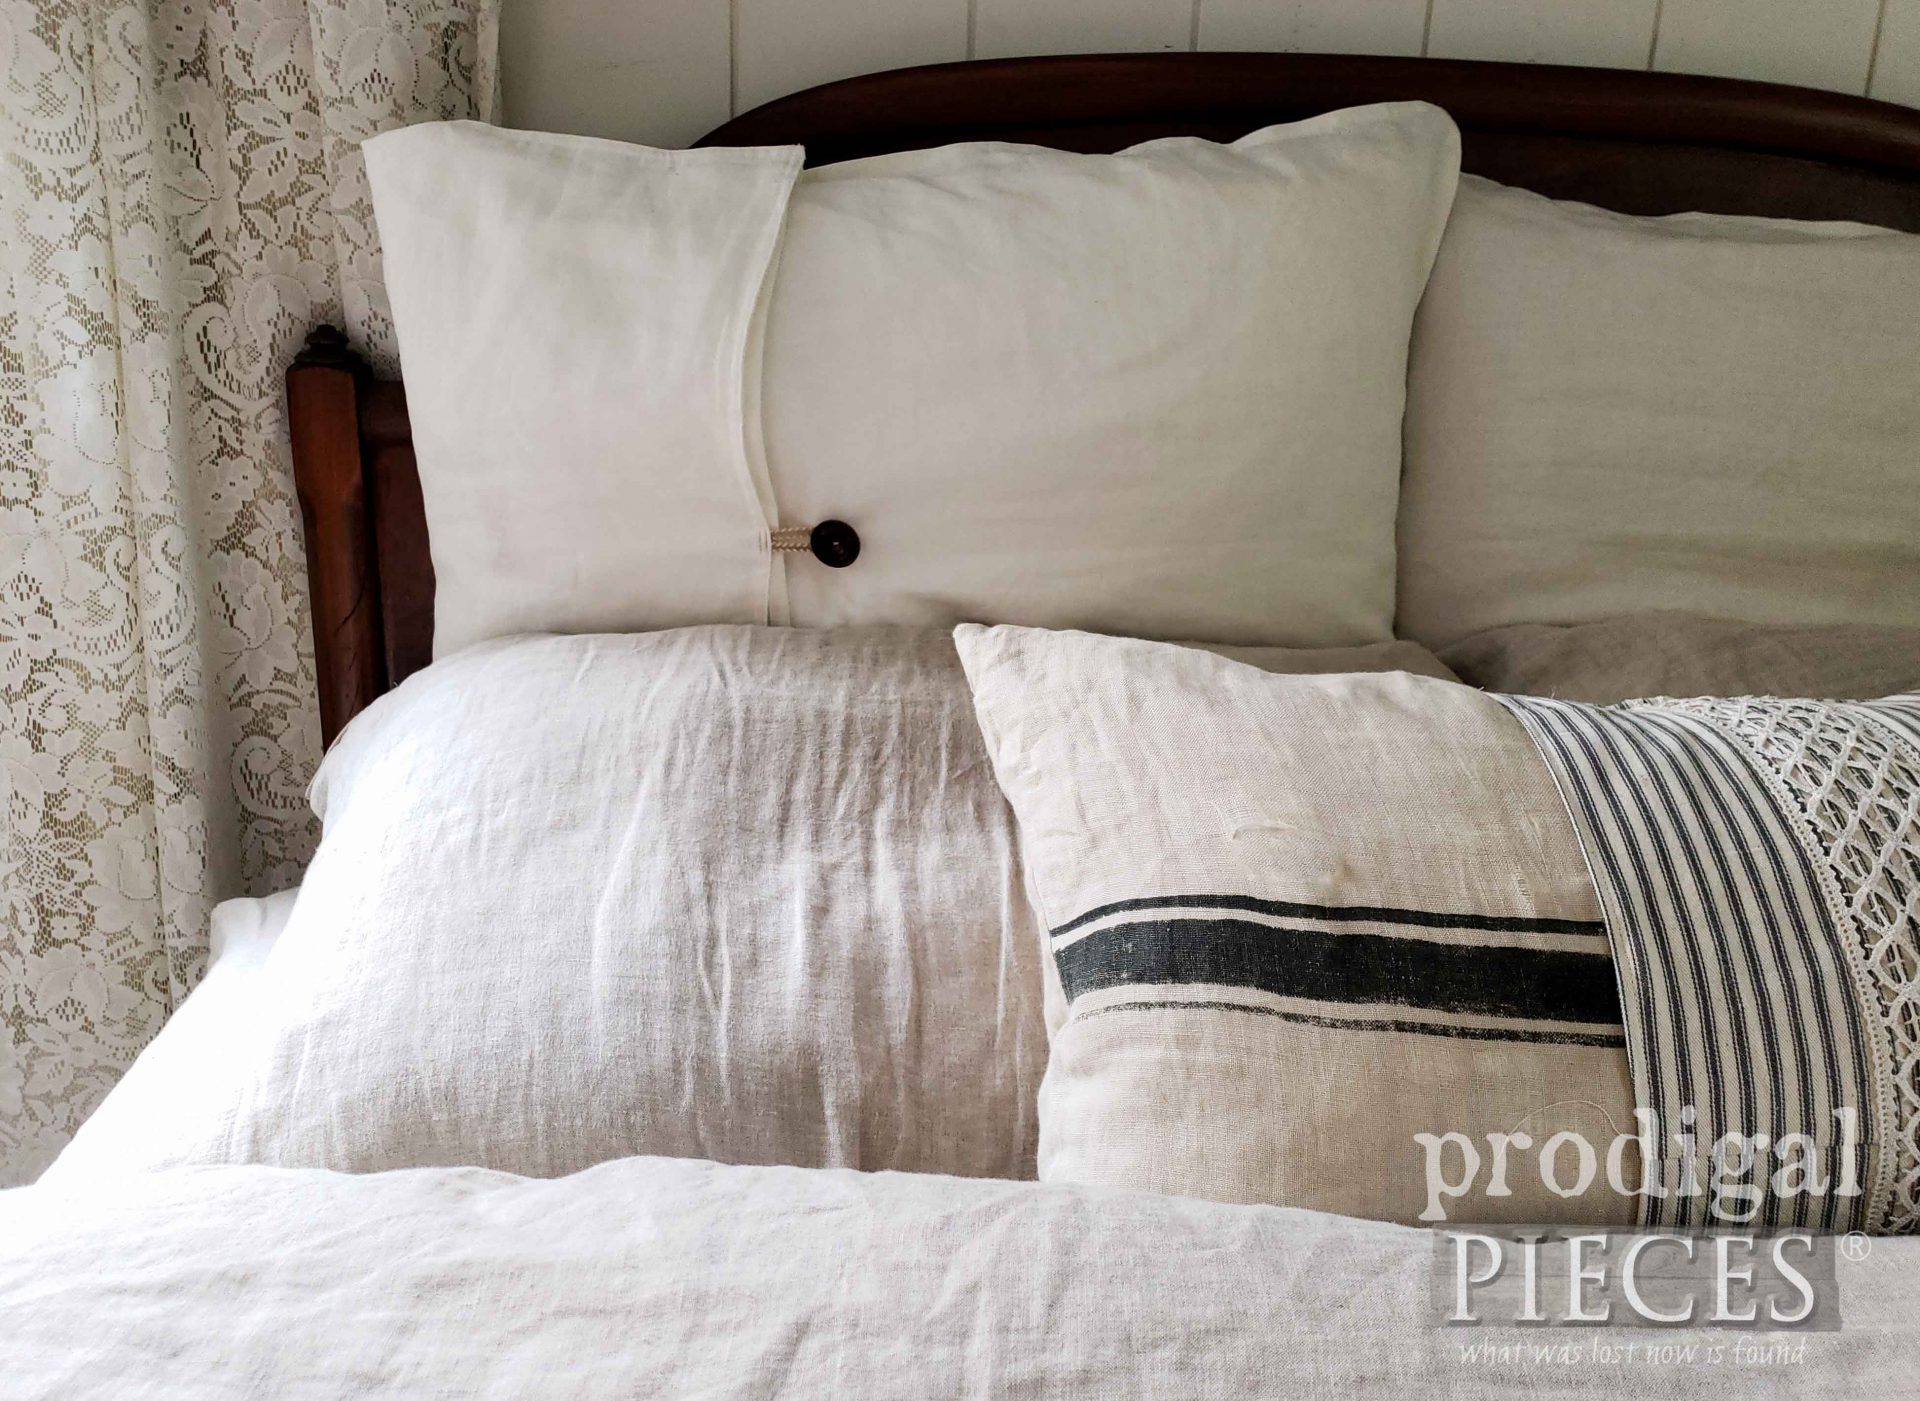 Handmade Linen Pillows with Ticking Stripes | prodigalpieces.com #prodigalpieces